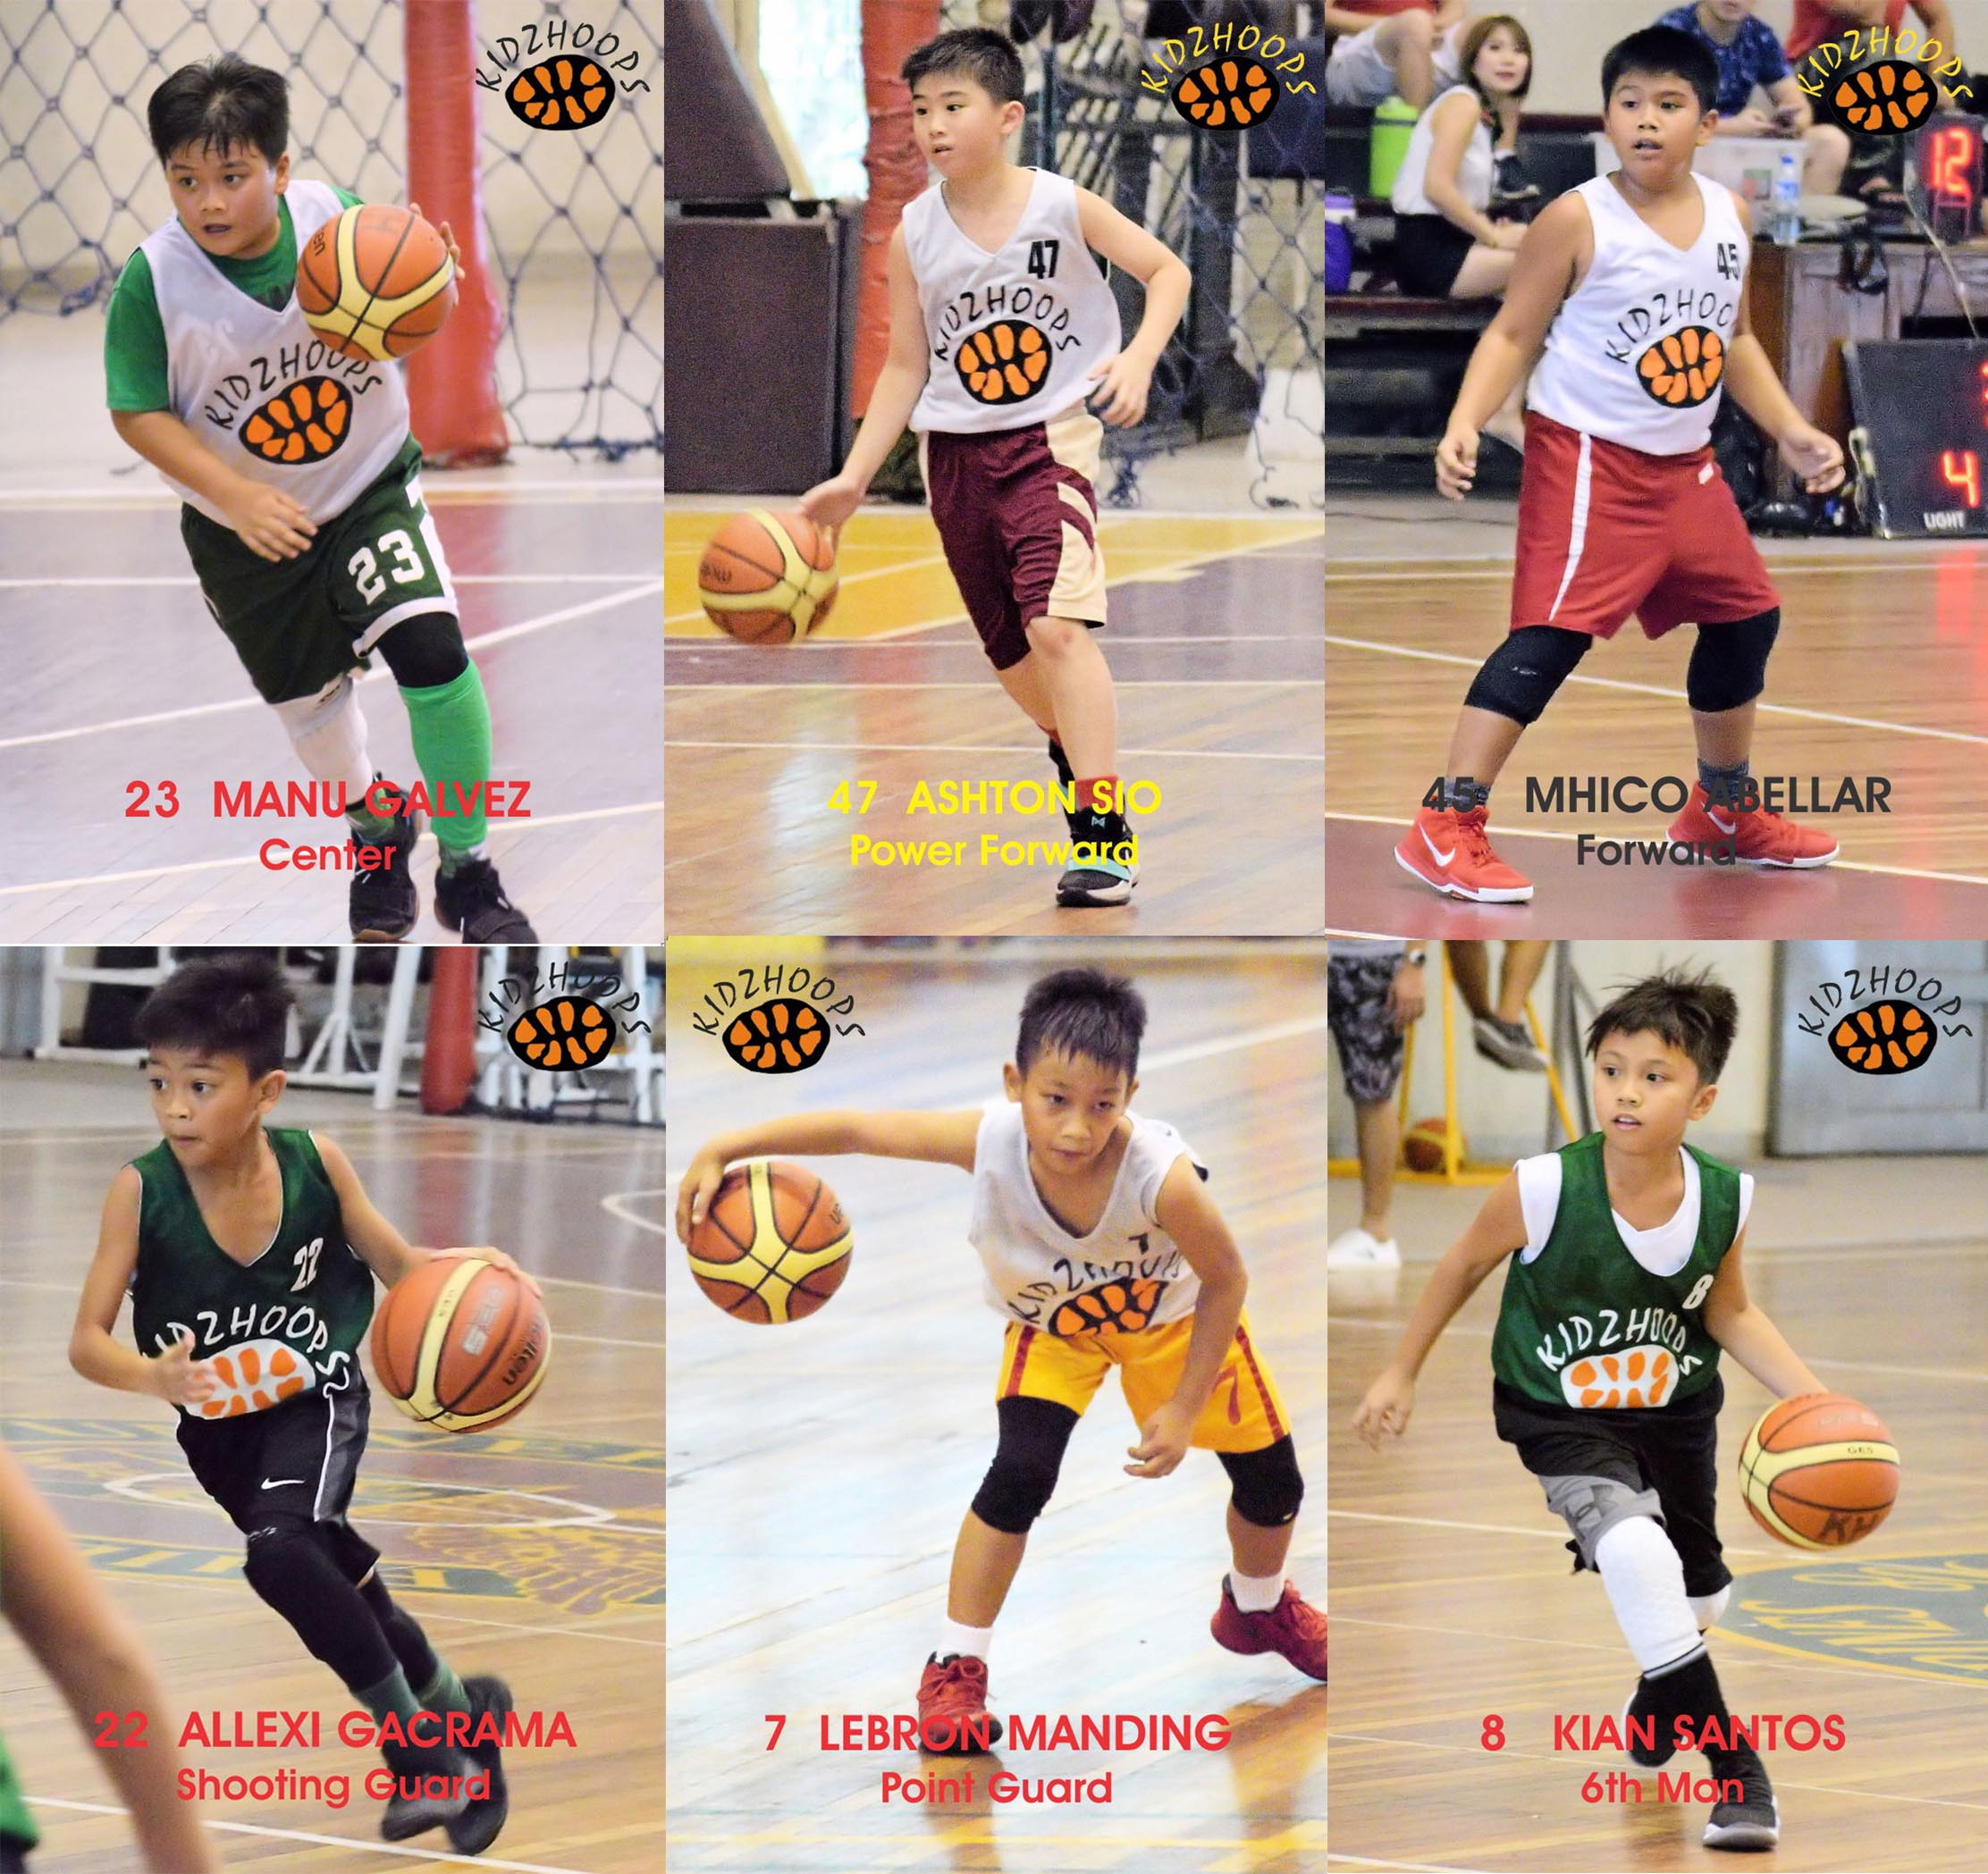 U11 Player Mythical 5 + 6th Man